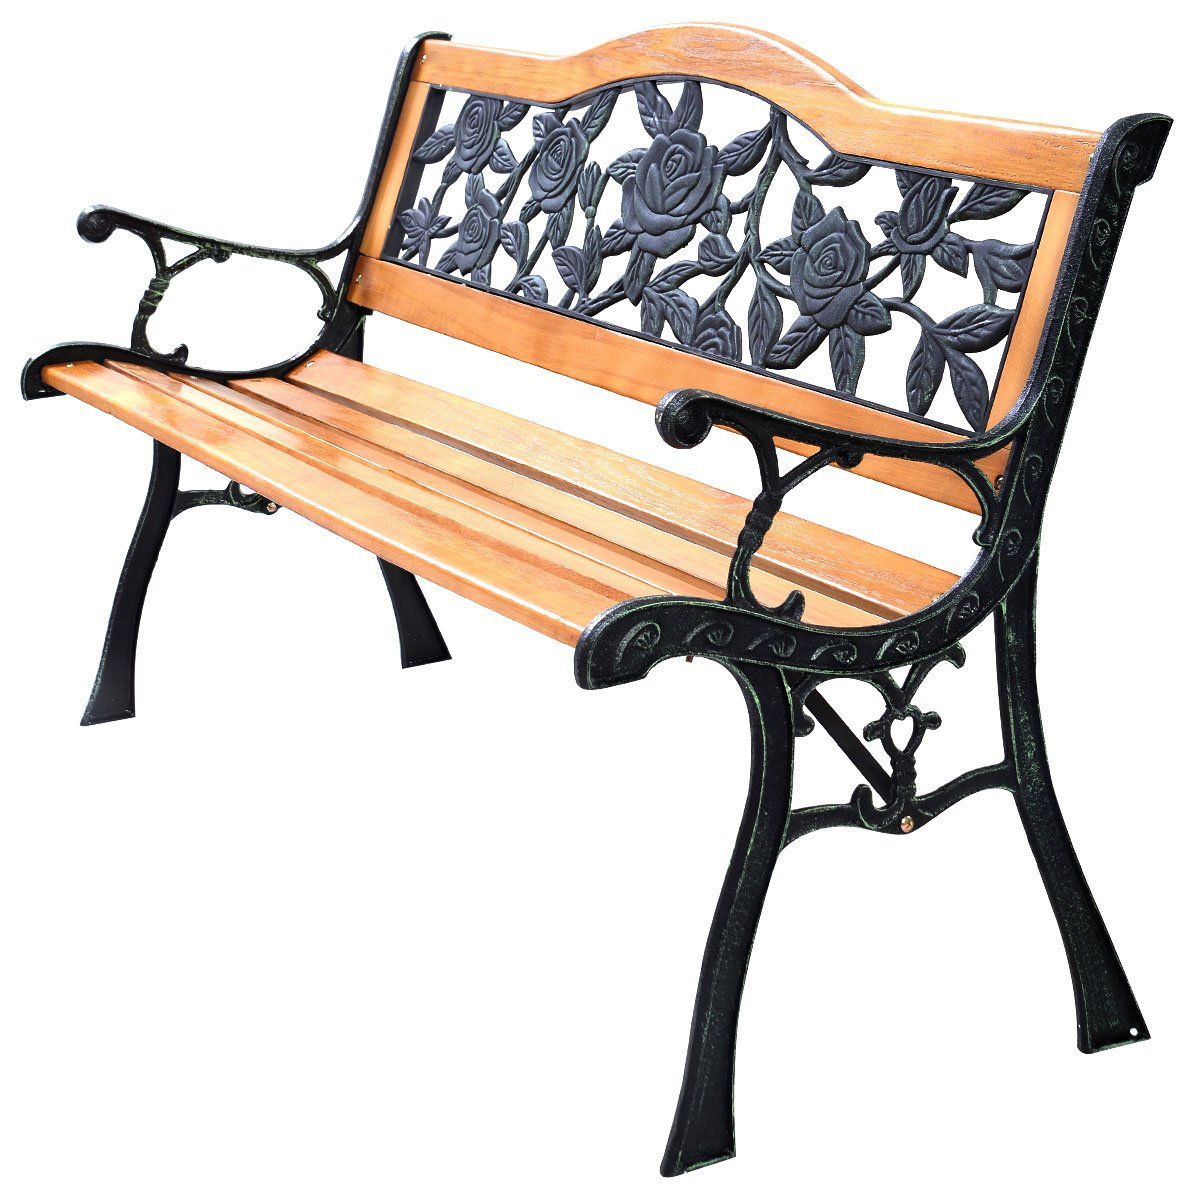 Giantex Patio Park Garden Bench Porch Path Chair Furniture Cast Iron Hardwood